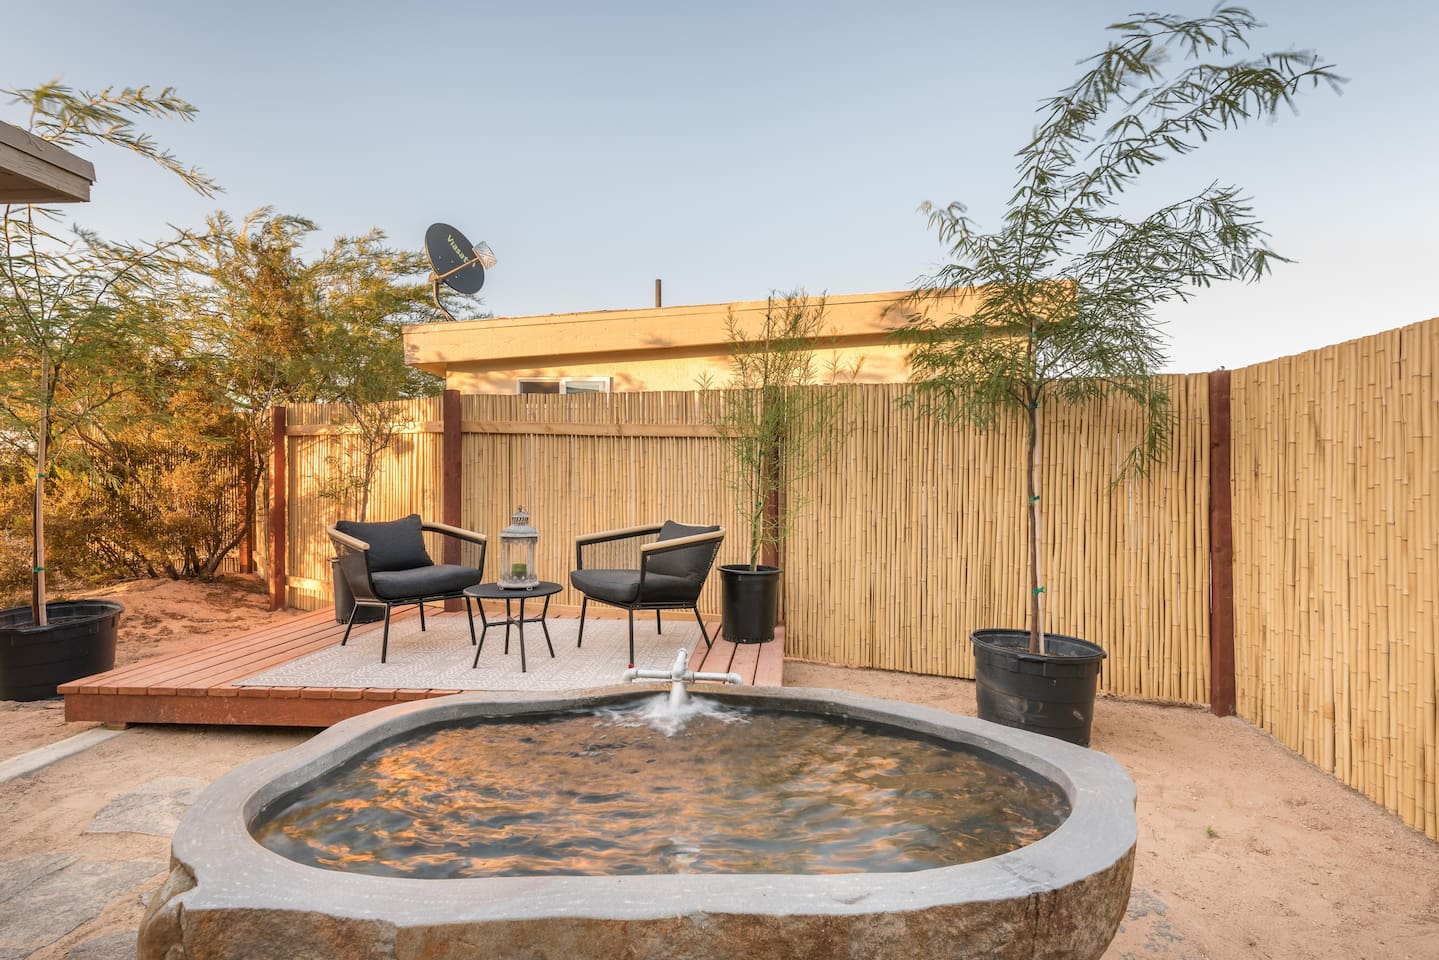 Backyard with private granite stone soaking tub filled with hot mineral springs water.